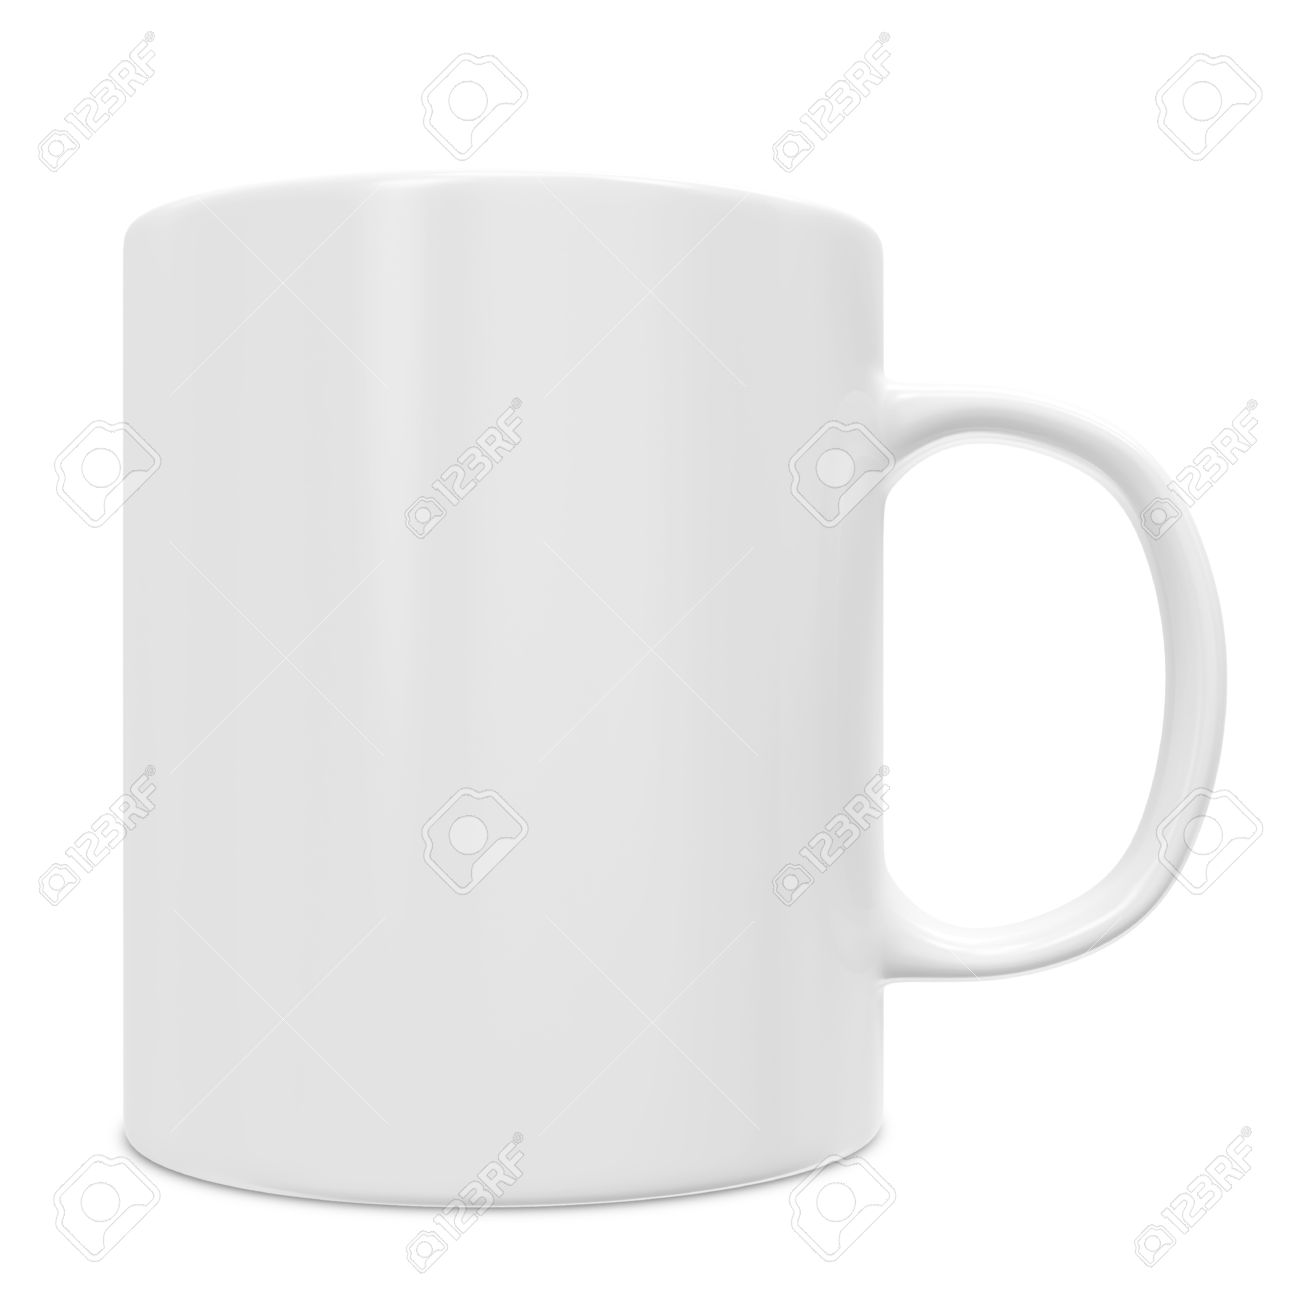 blank white cup isolated